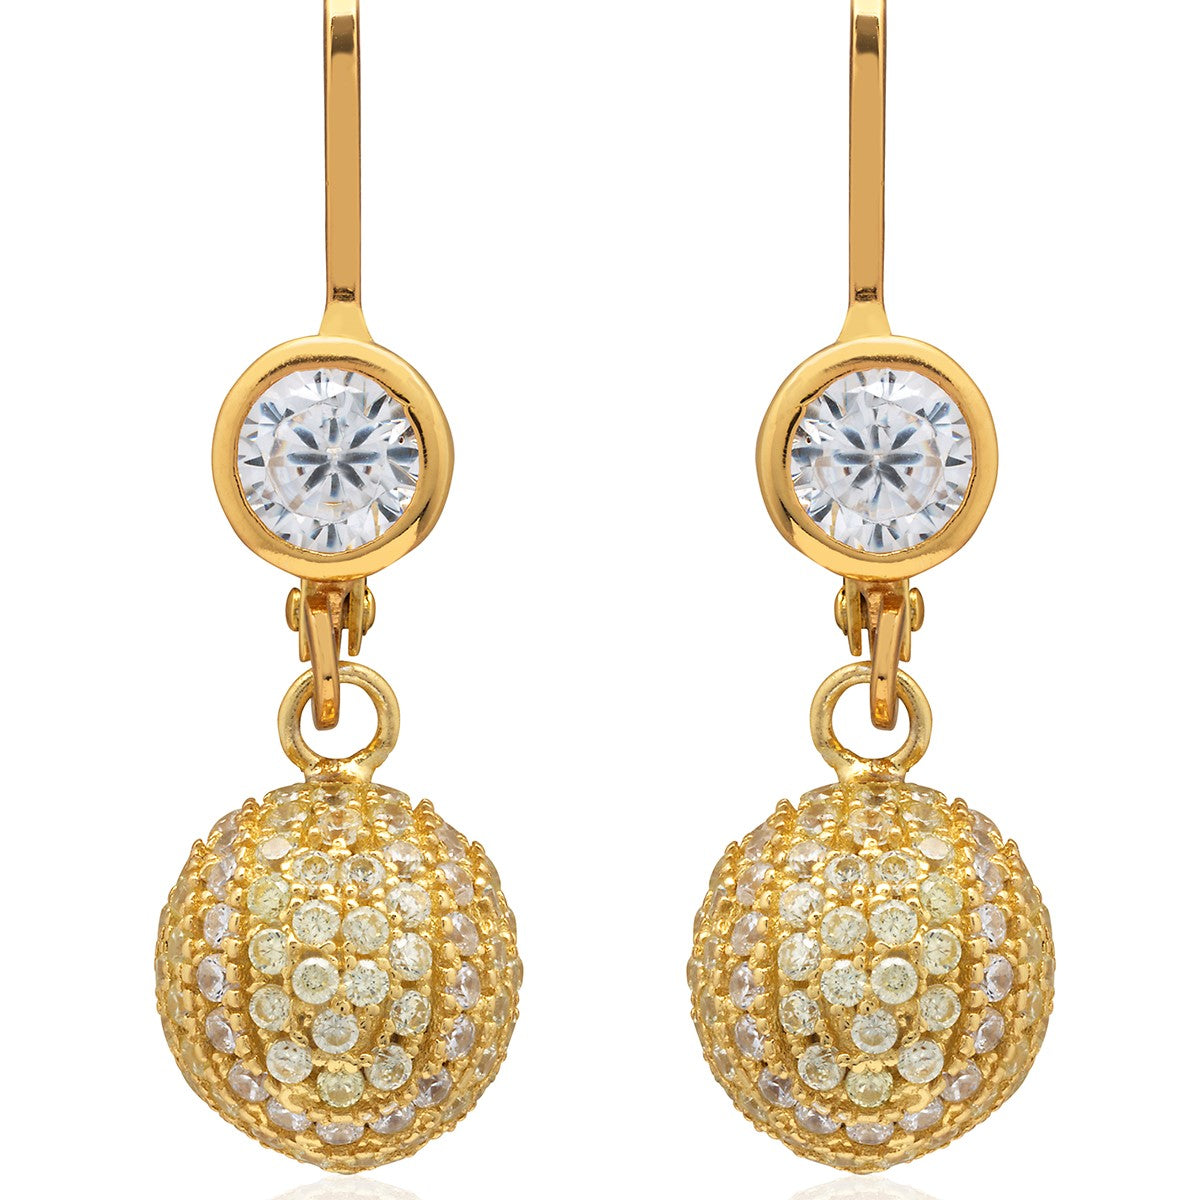 CZ Pave Tennis Ball Earrings